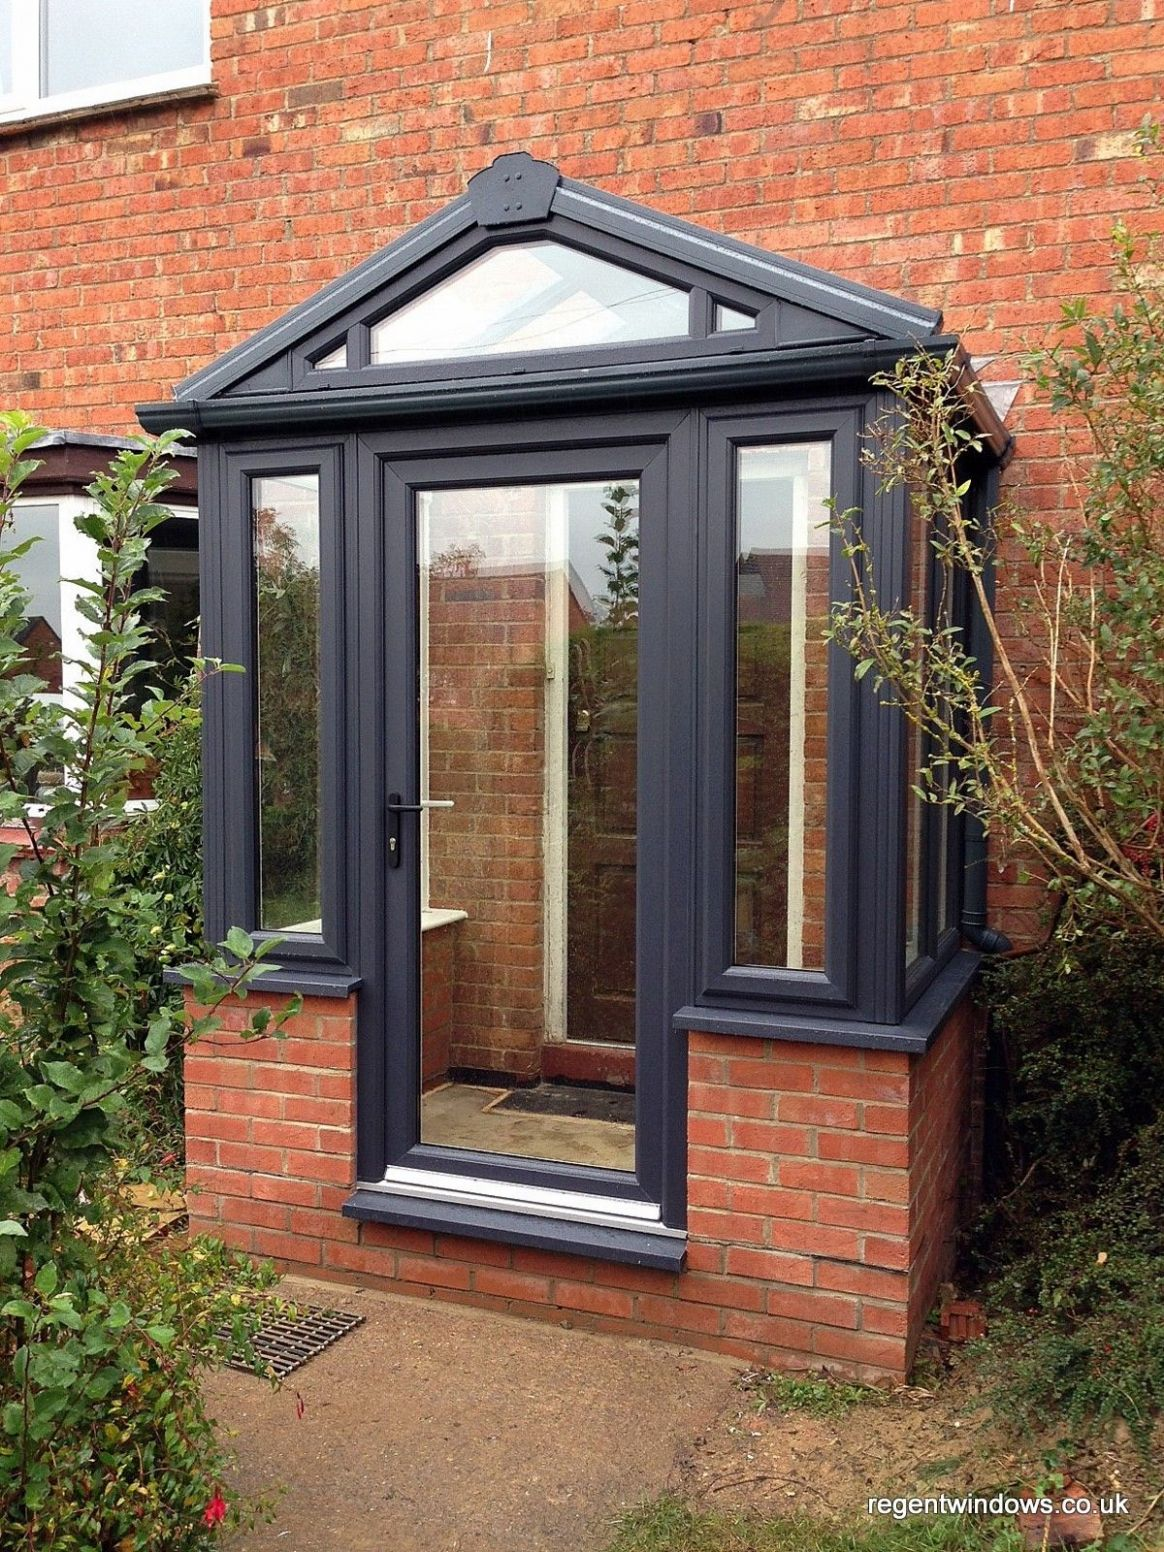 Grey on White upvc Porch classical design … (With images) | Porch ..